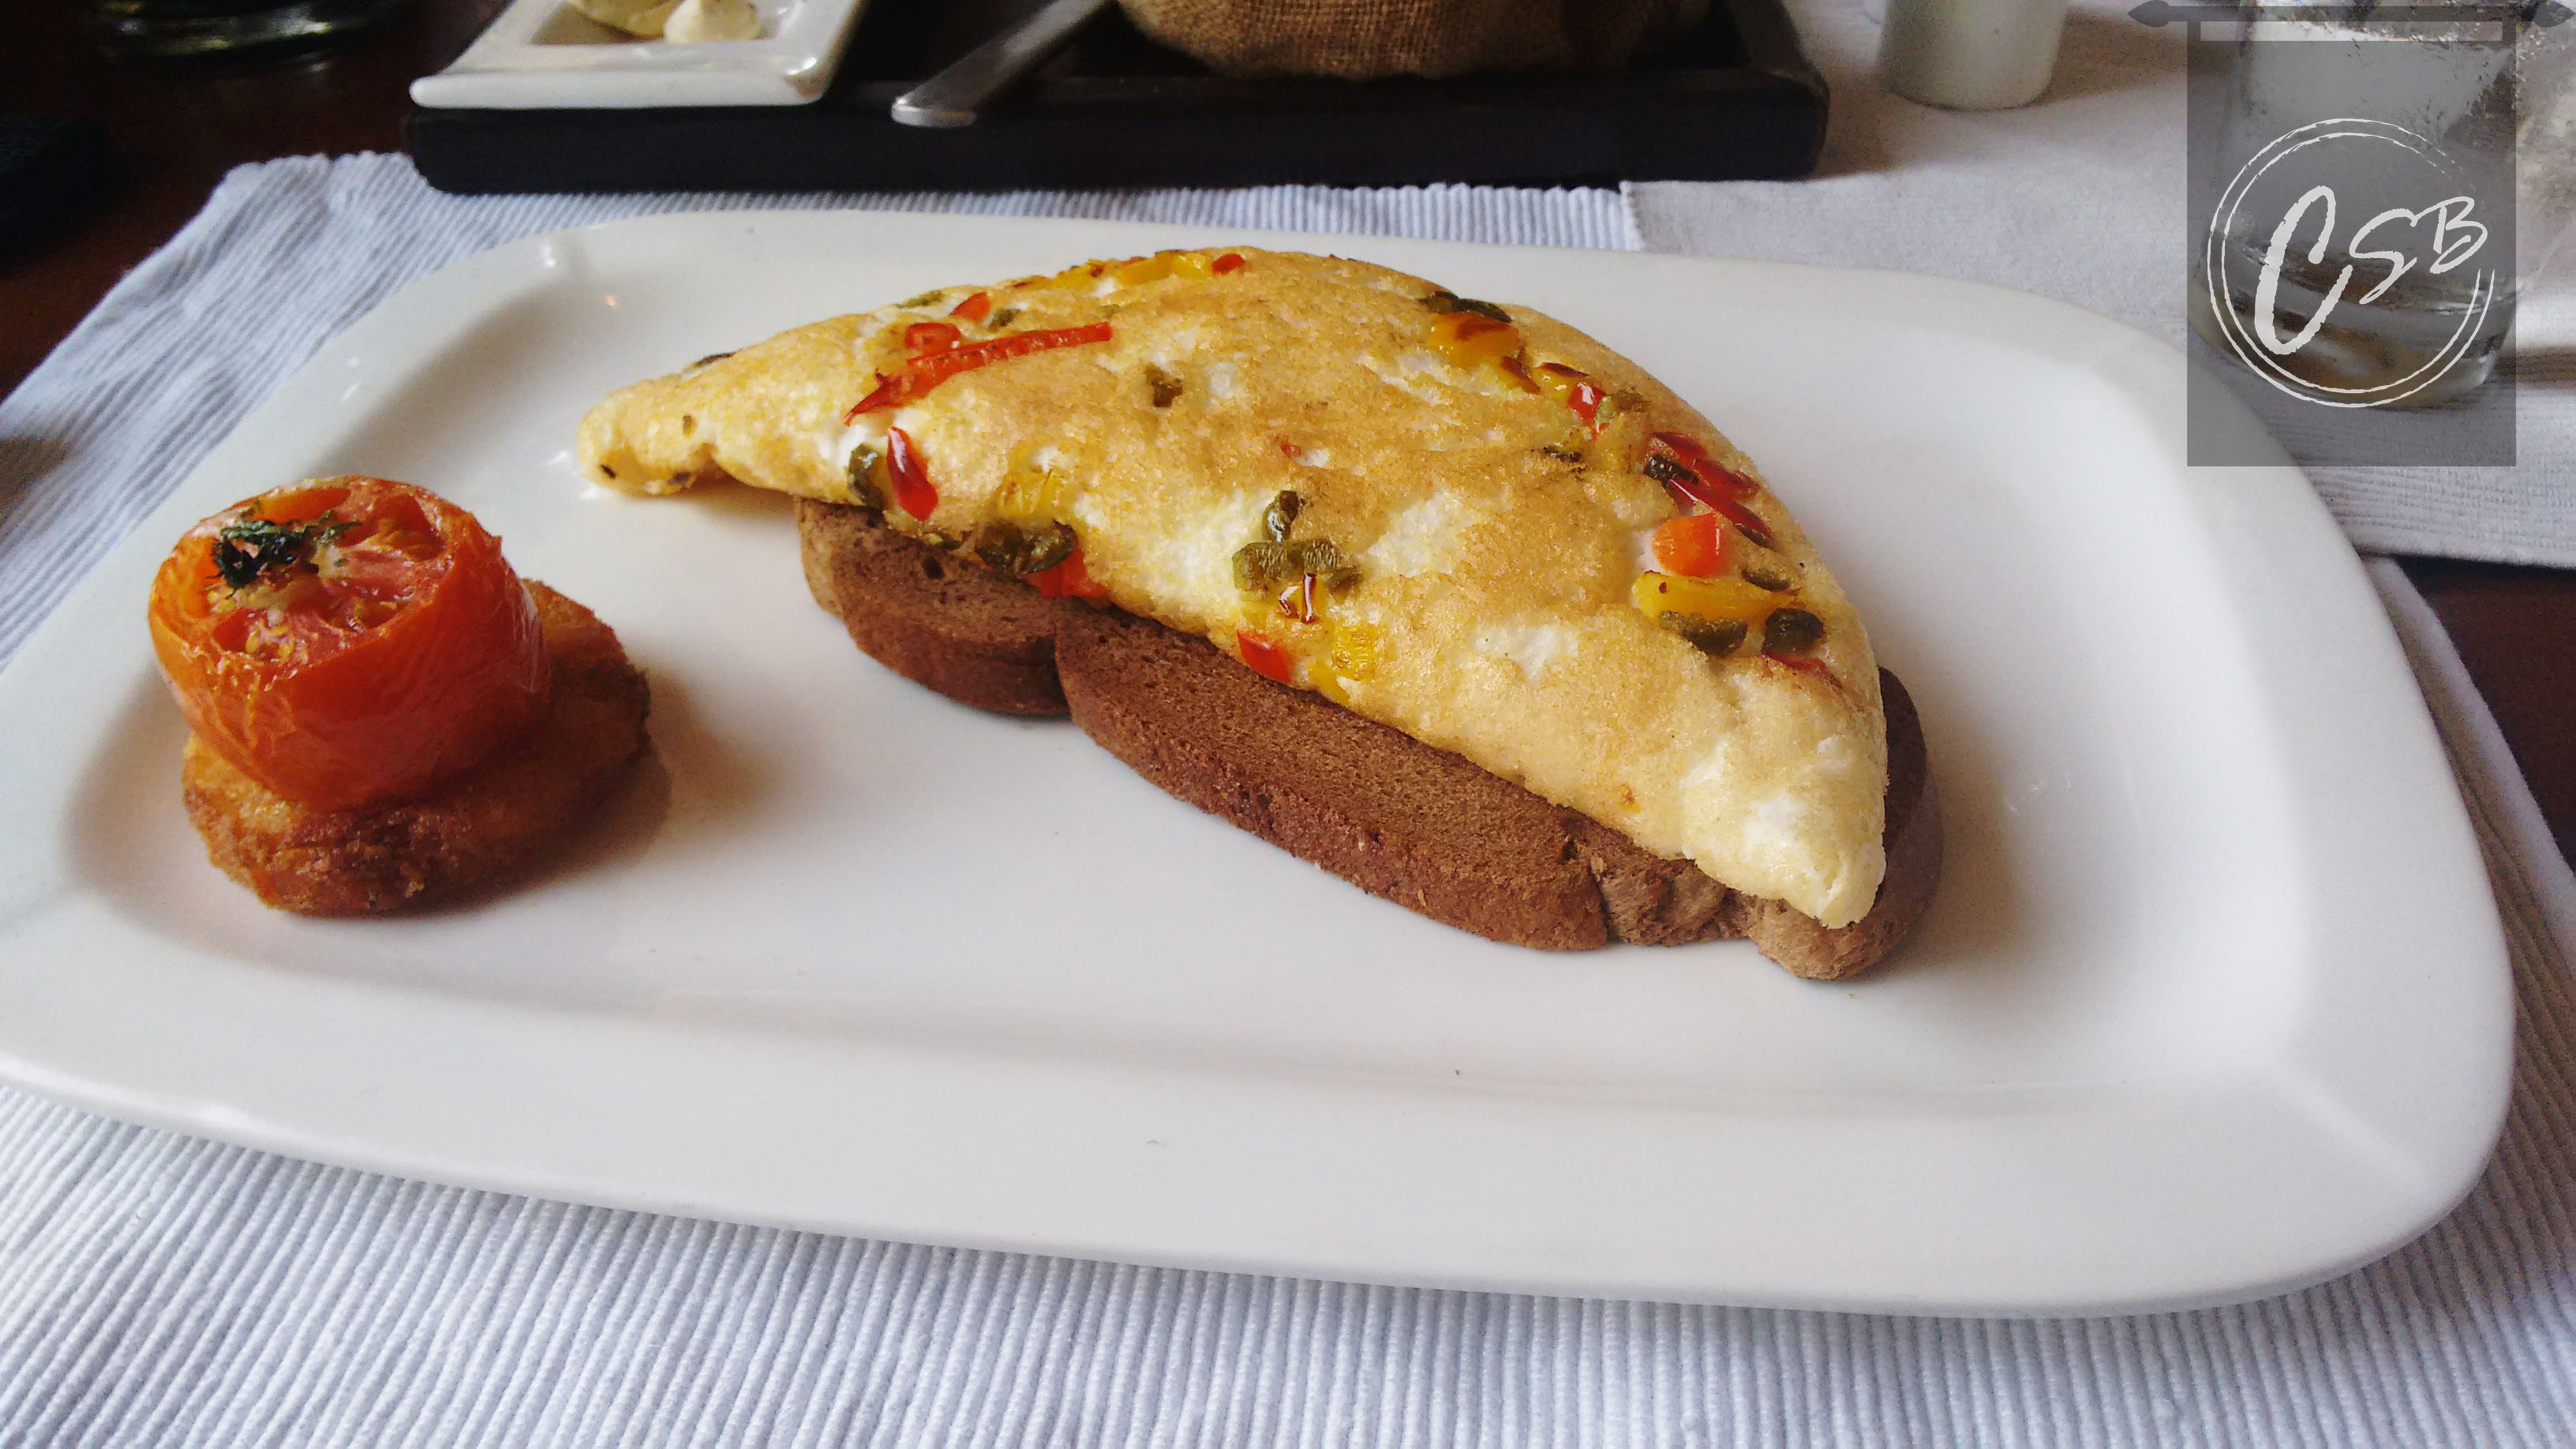 Jalapeno and smoked pimento fluffy omelette